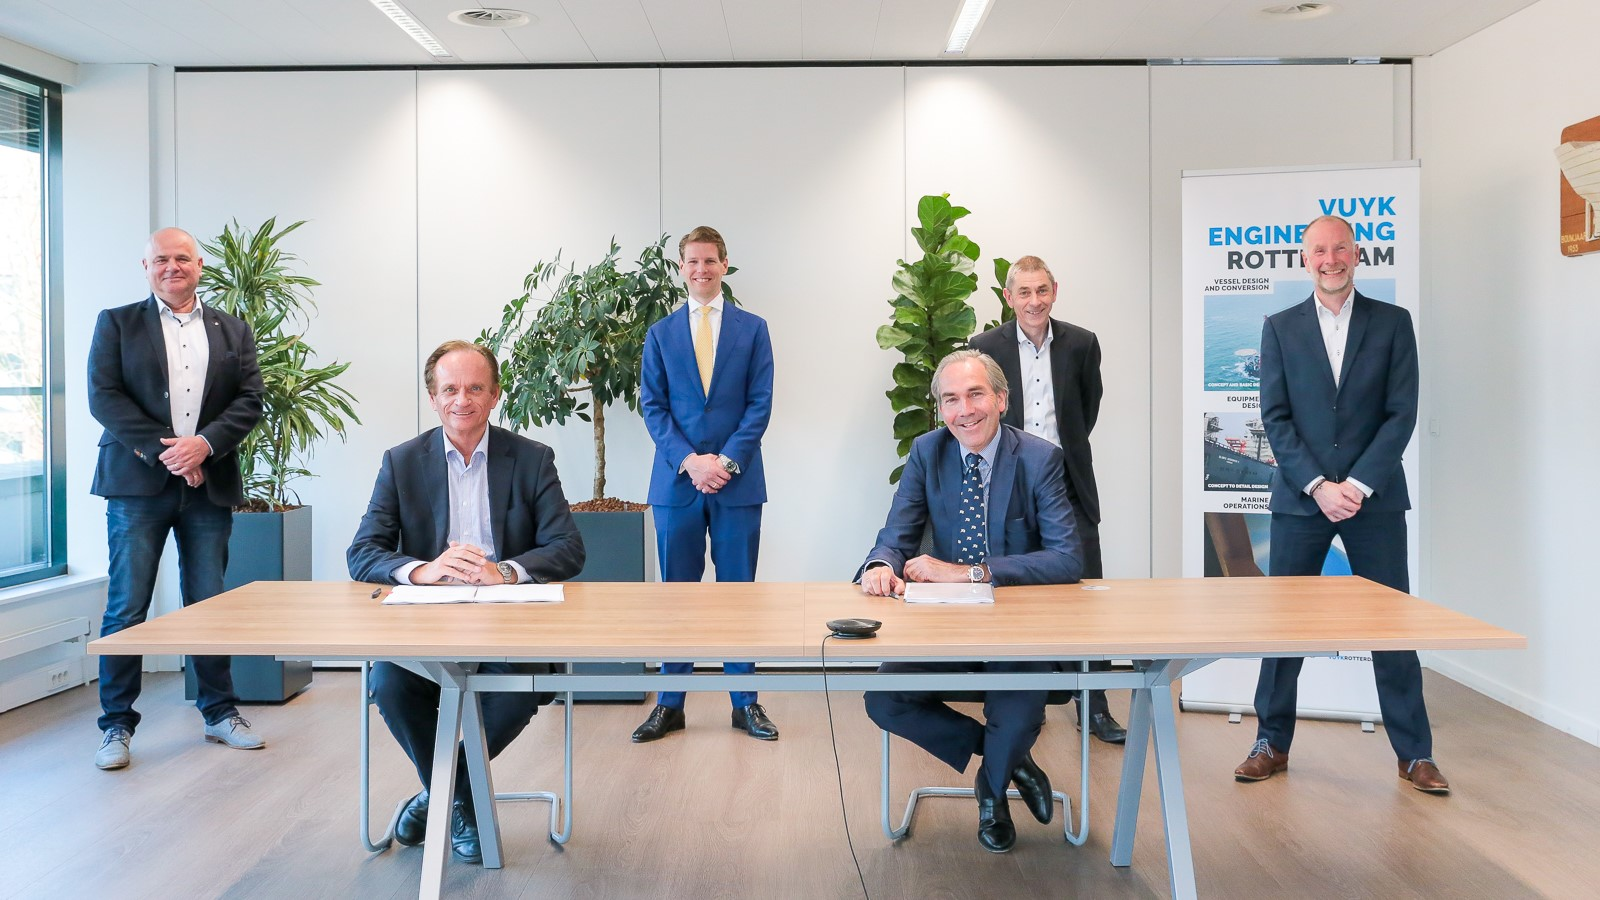 Image of Royal Doeksen takes over Vuyk Engineering Rotterdam from Royal IHC